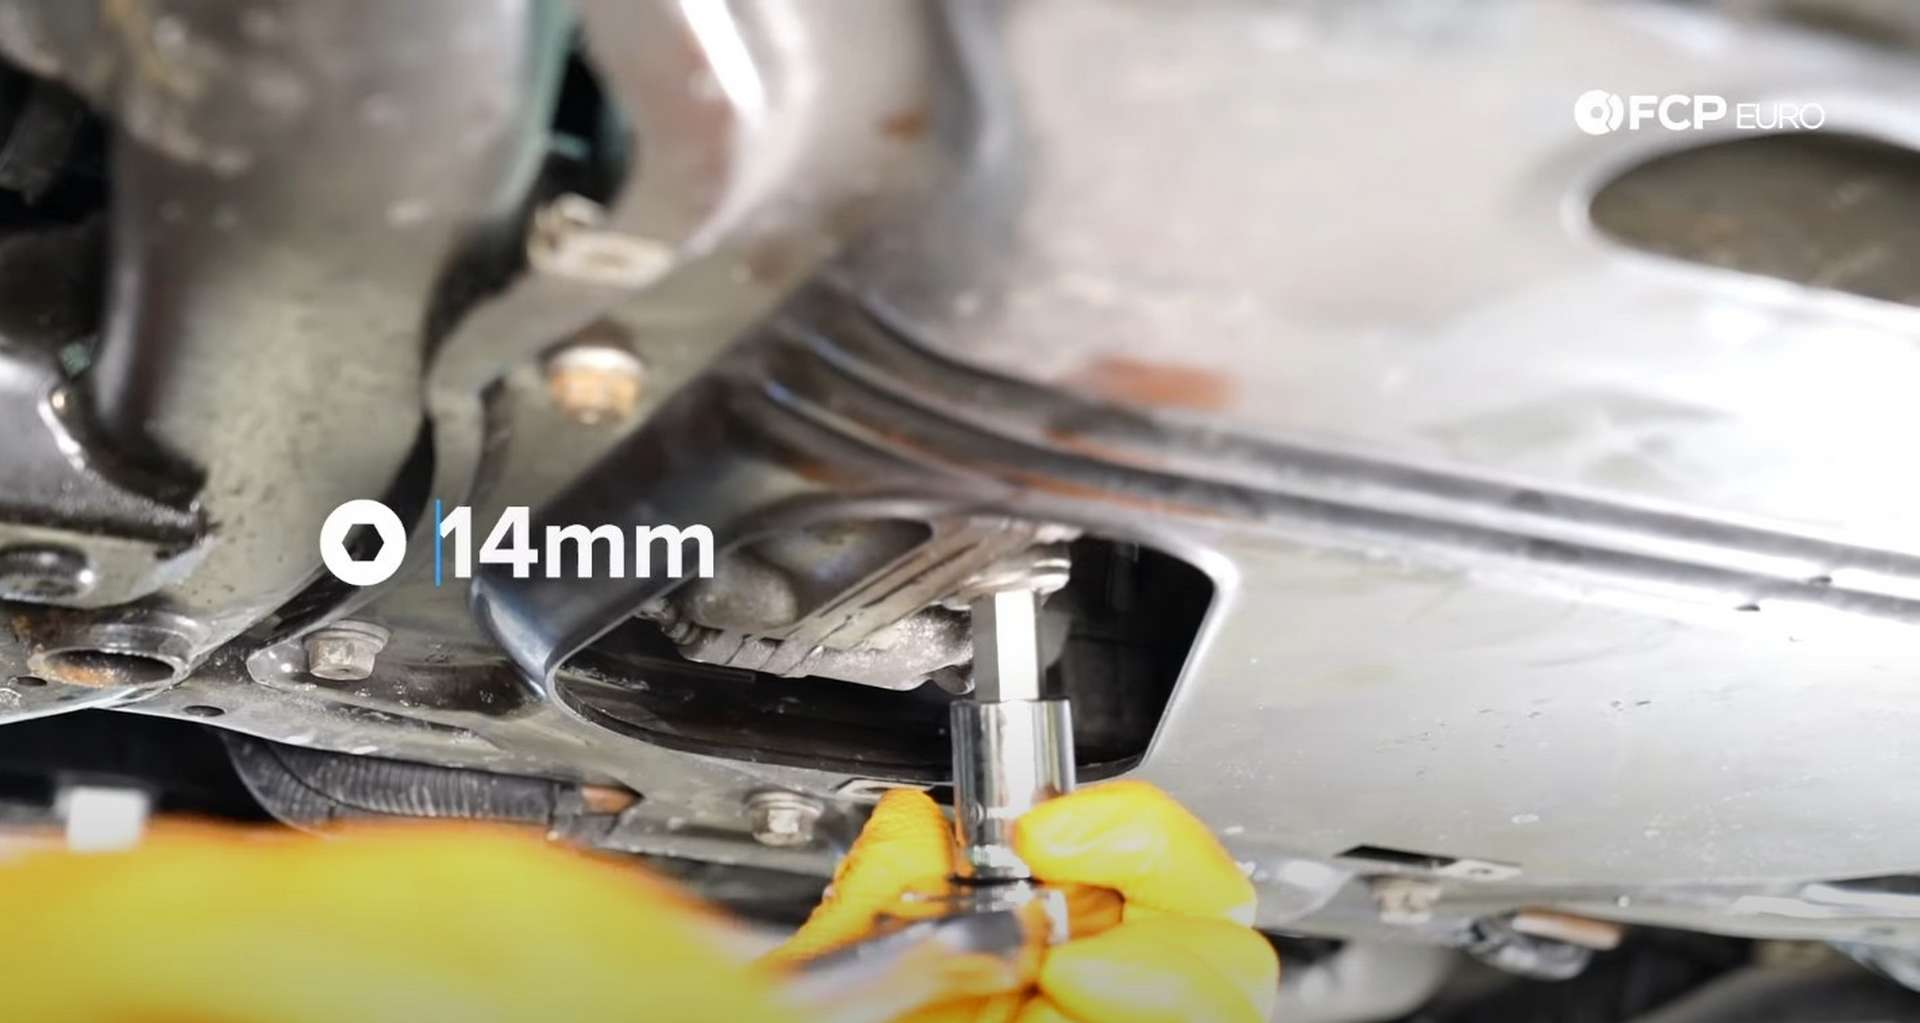 DIY BMW F30 Front Differential Fluid Replacement removing the drain plug